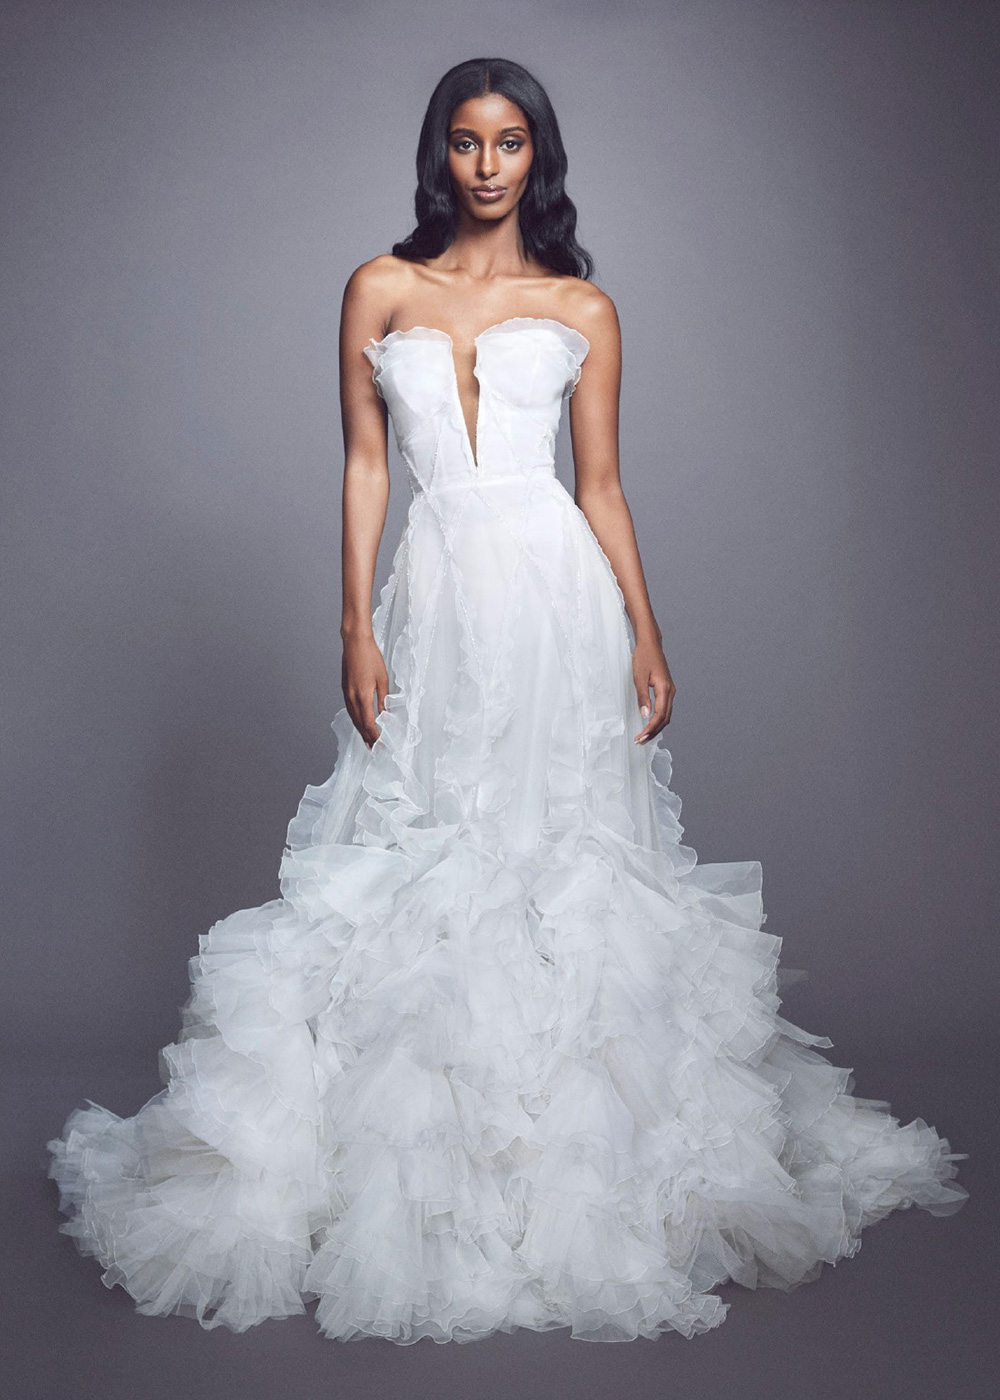 Marchesa Fall 2021 Bridal Collection. www.theweddingnotebook.com